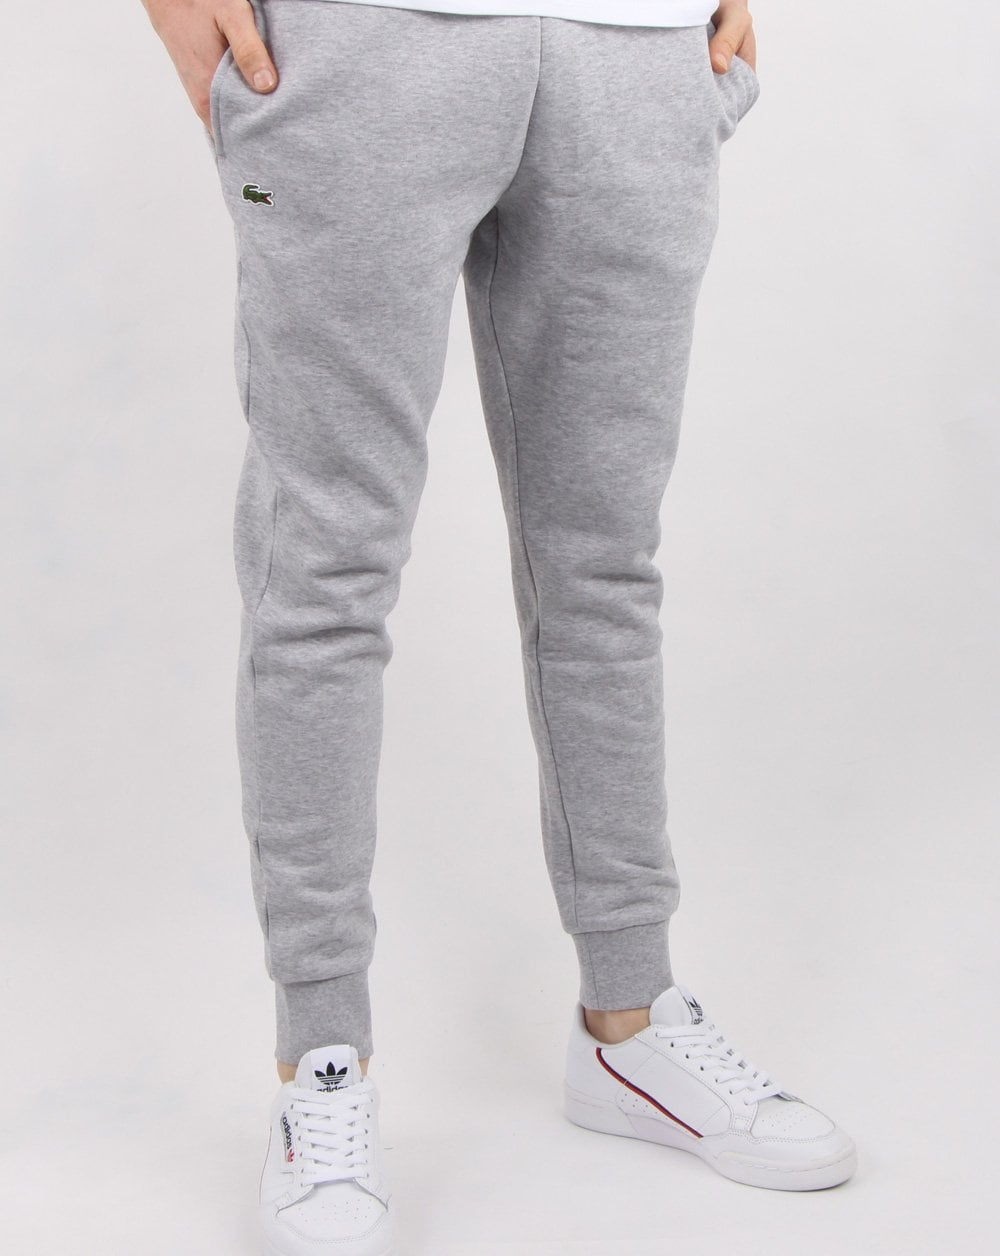 285462ba Lacoste Track Pants in Grey | 80s Casual Classics